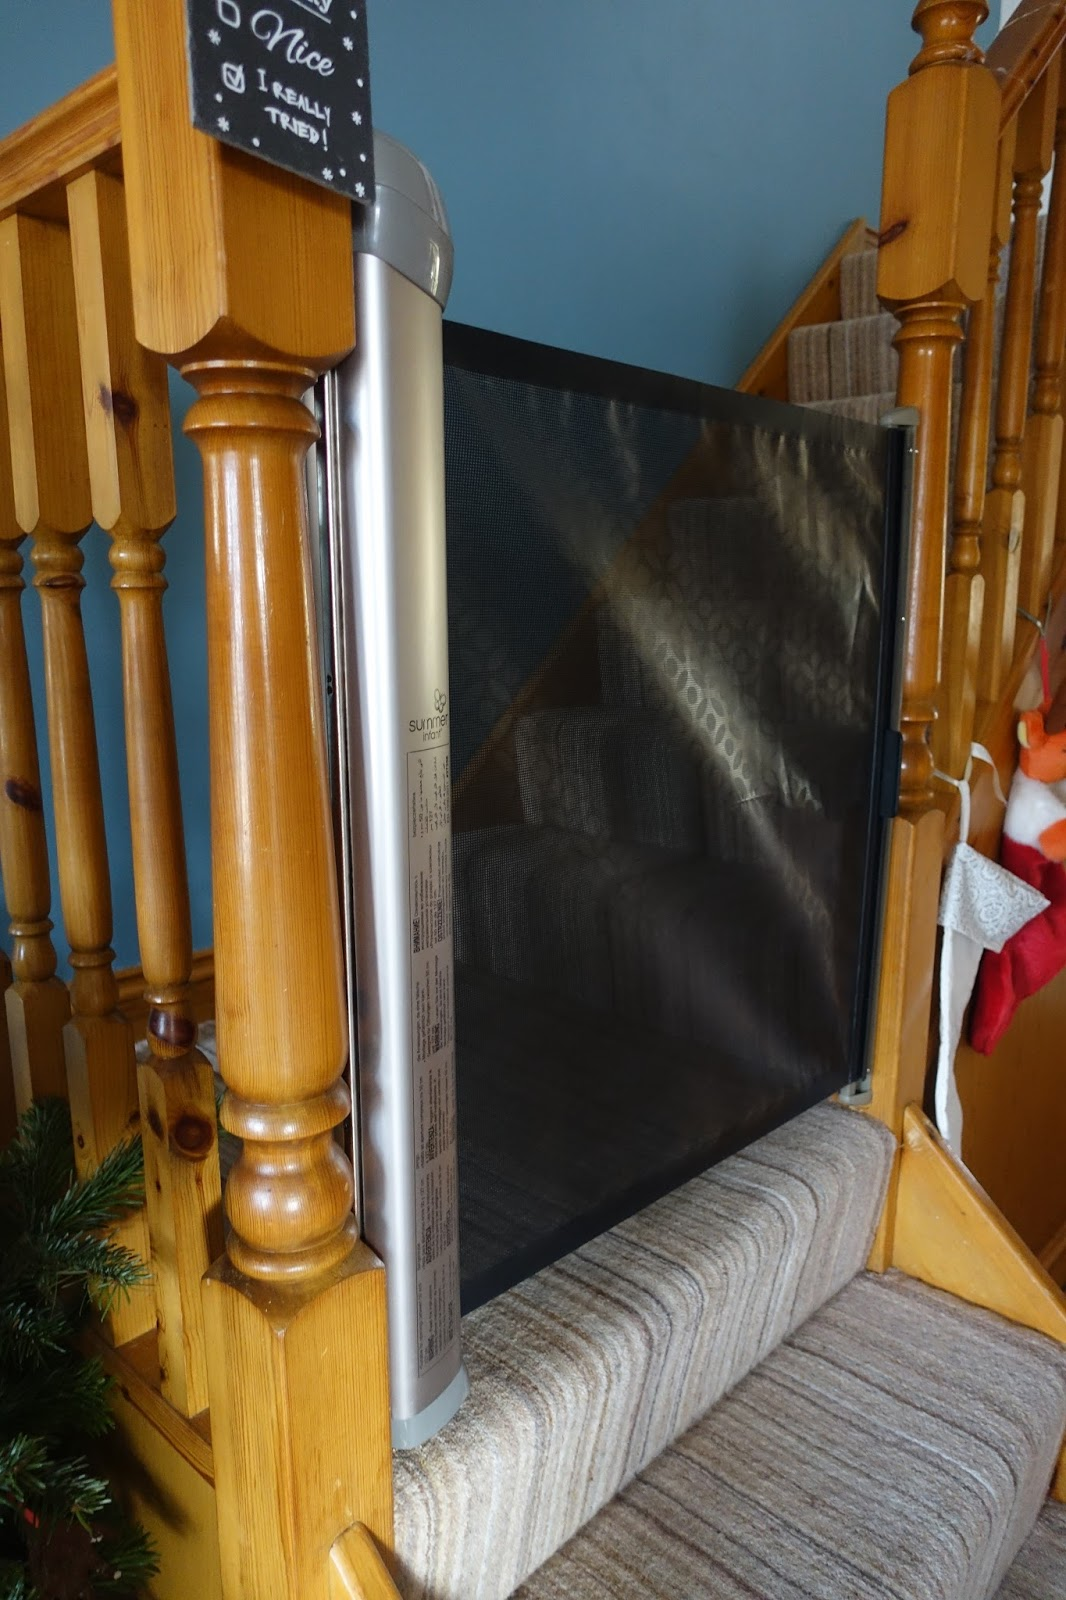 Summer Infant Retractable Gate A Review This Day I